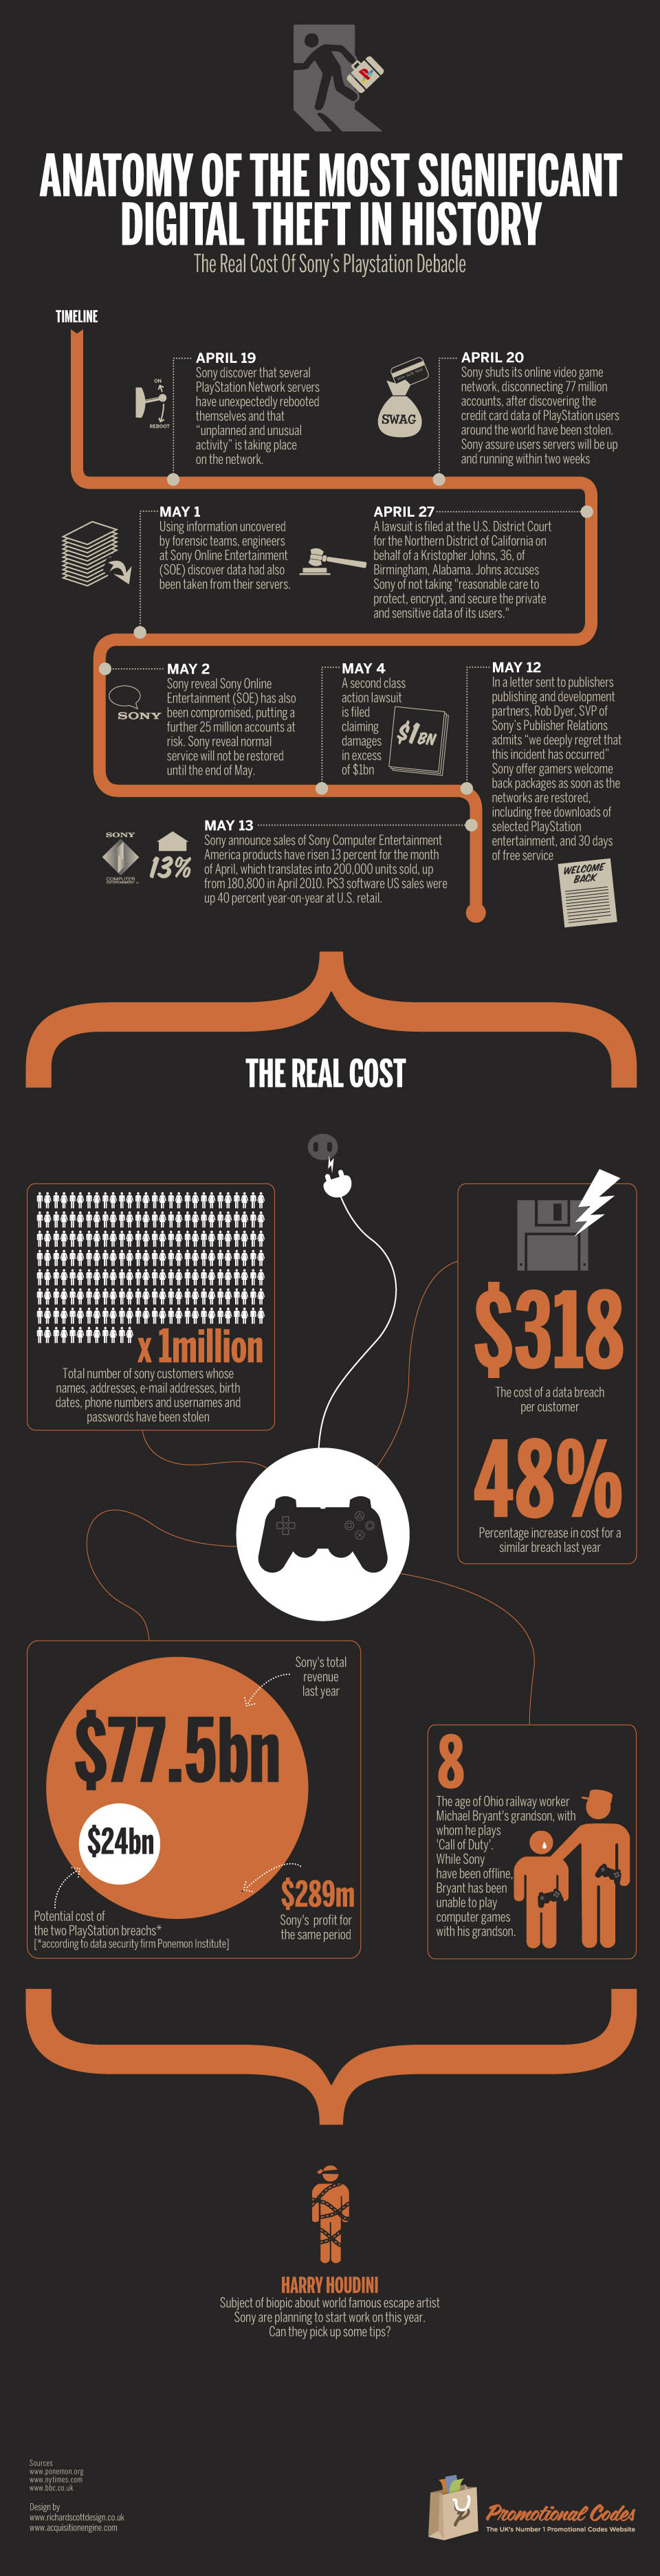 The Real Cost of Sony's Network Outage Infographic